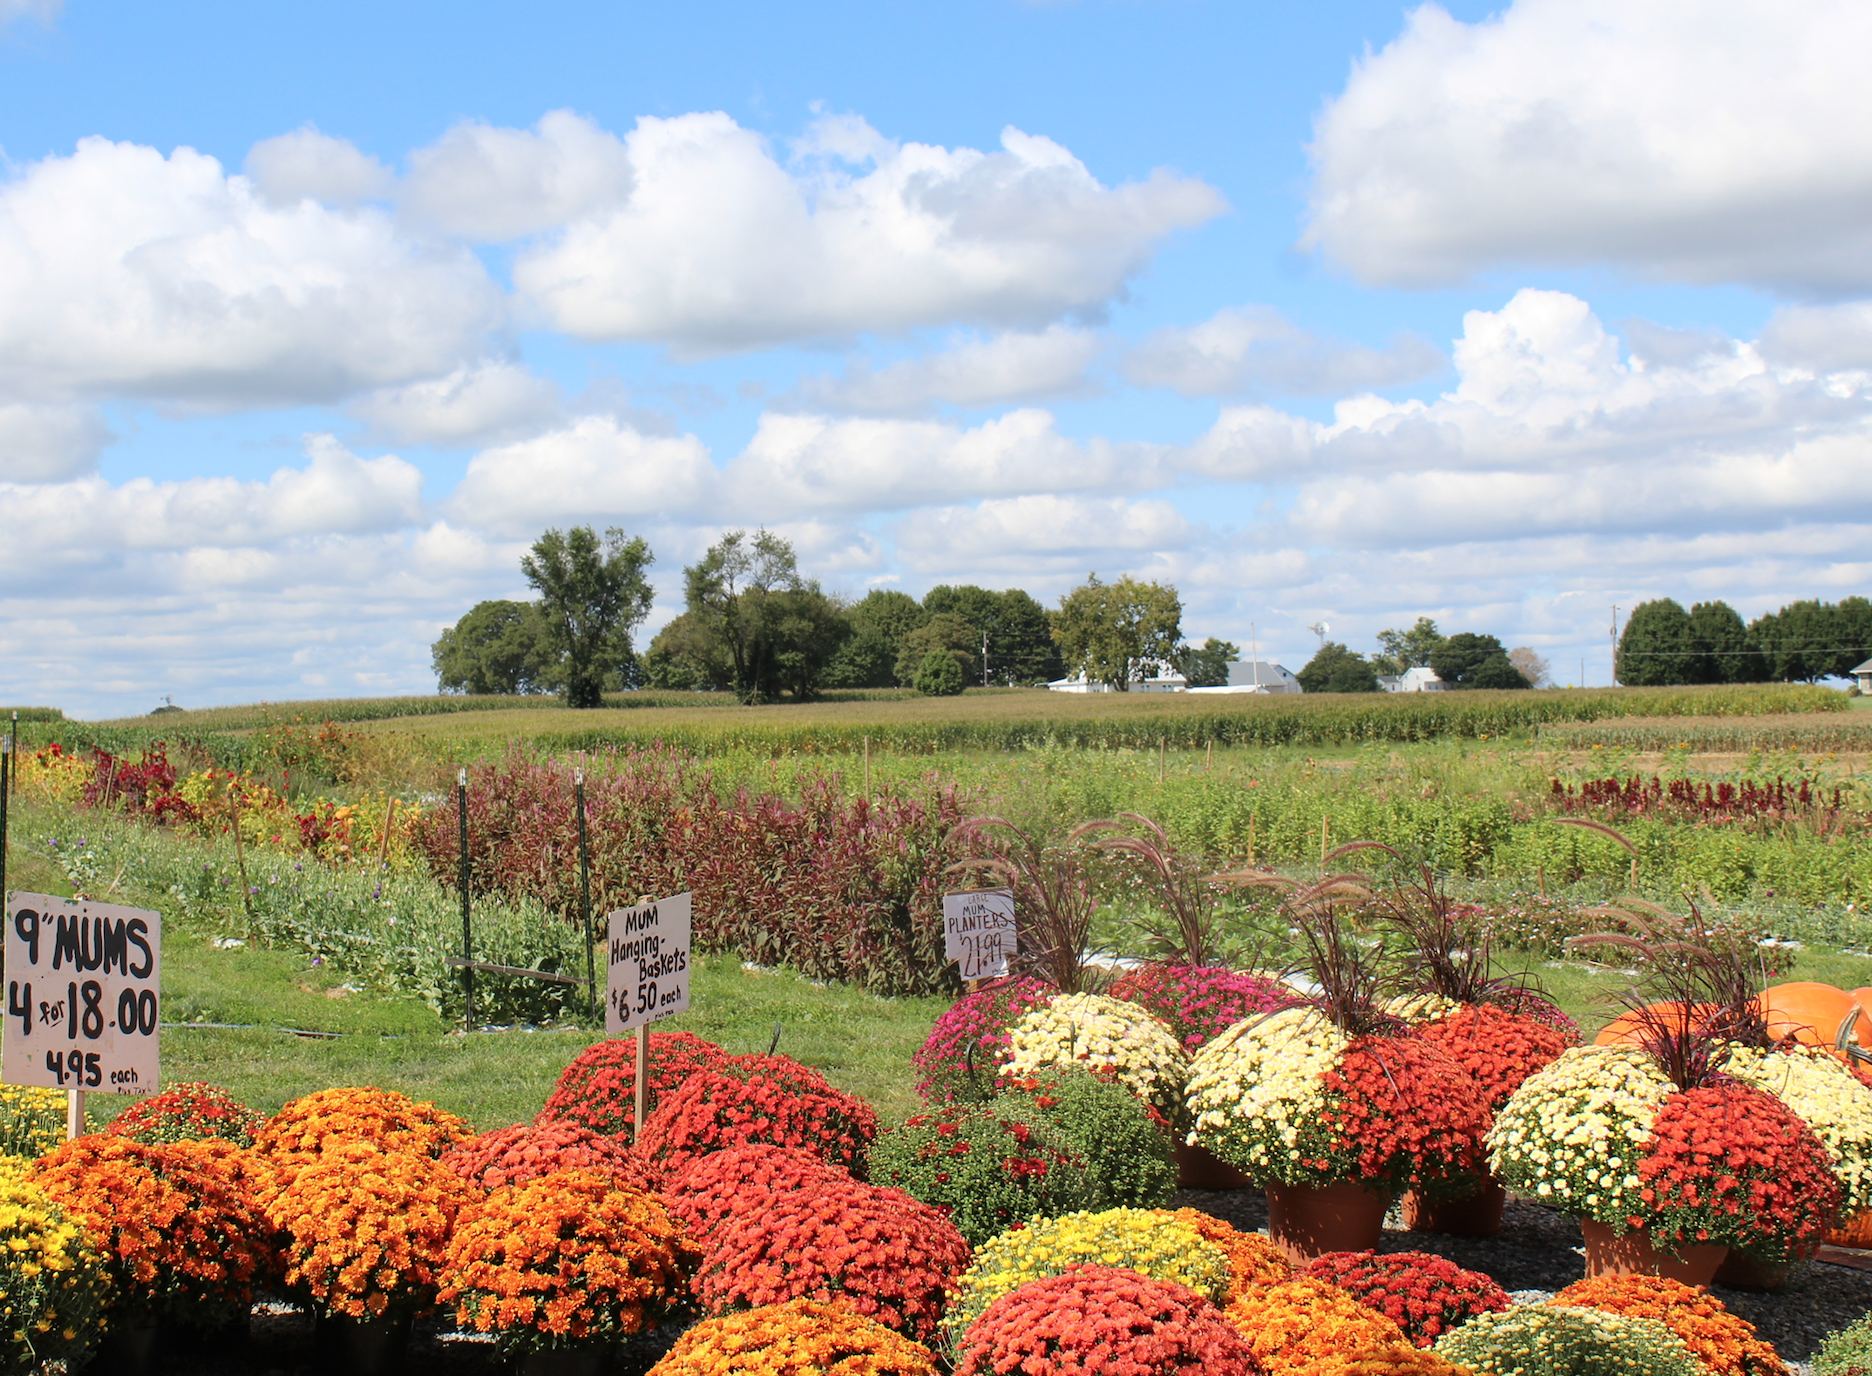 EverFresh Produce Farm Market New Holland Lancaster County PA seasonally grown produce field-to-table produce fresh baked goods preserves home canned options cut-your-own flowers arranged bouquet tomatoes canning Locally Owned Locally Operated